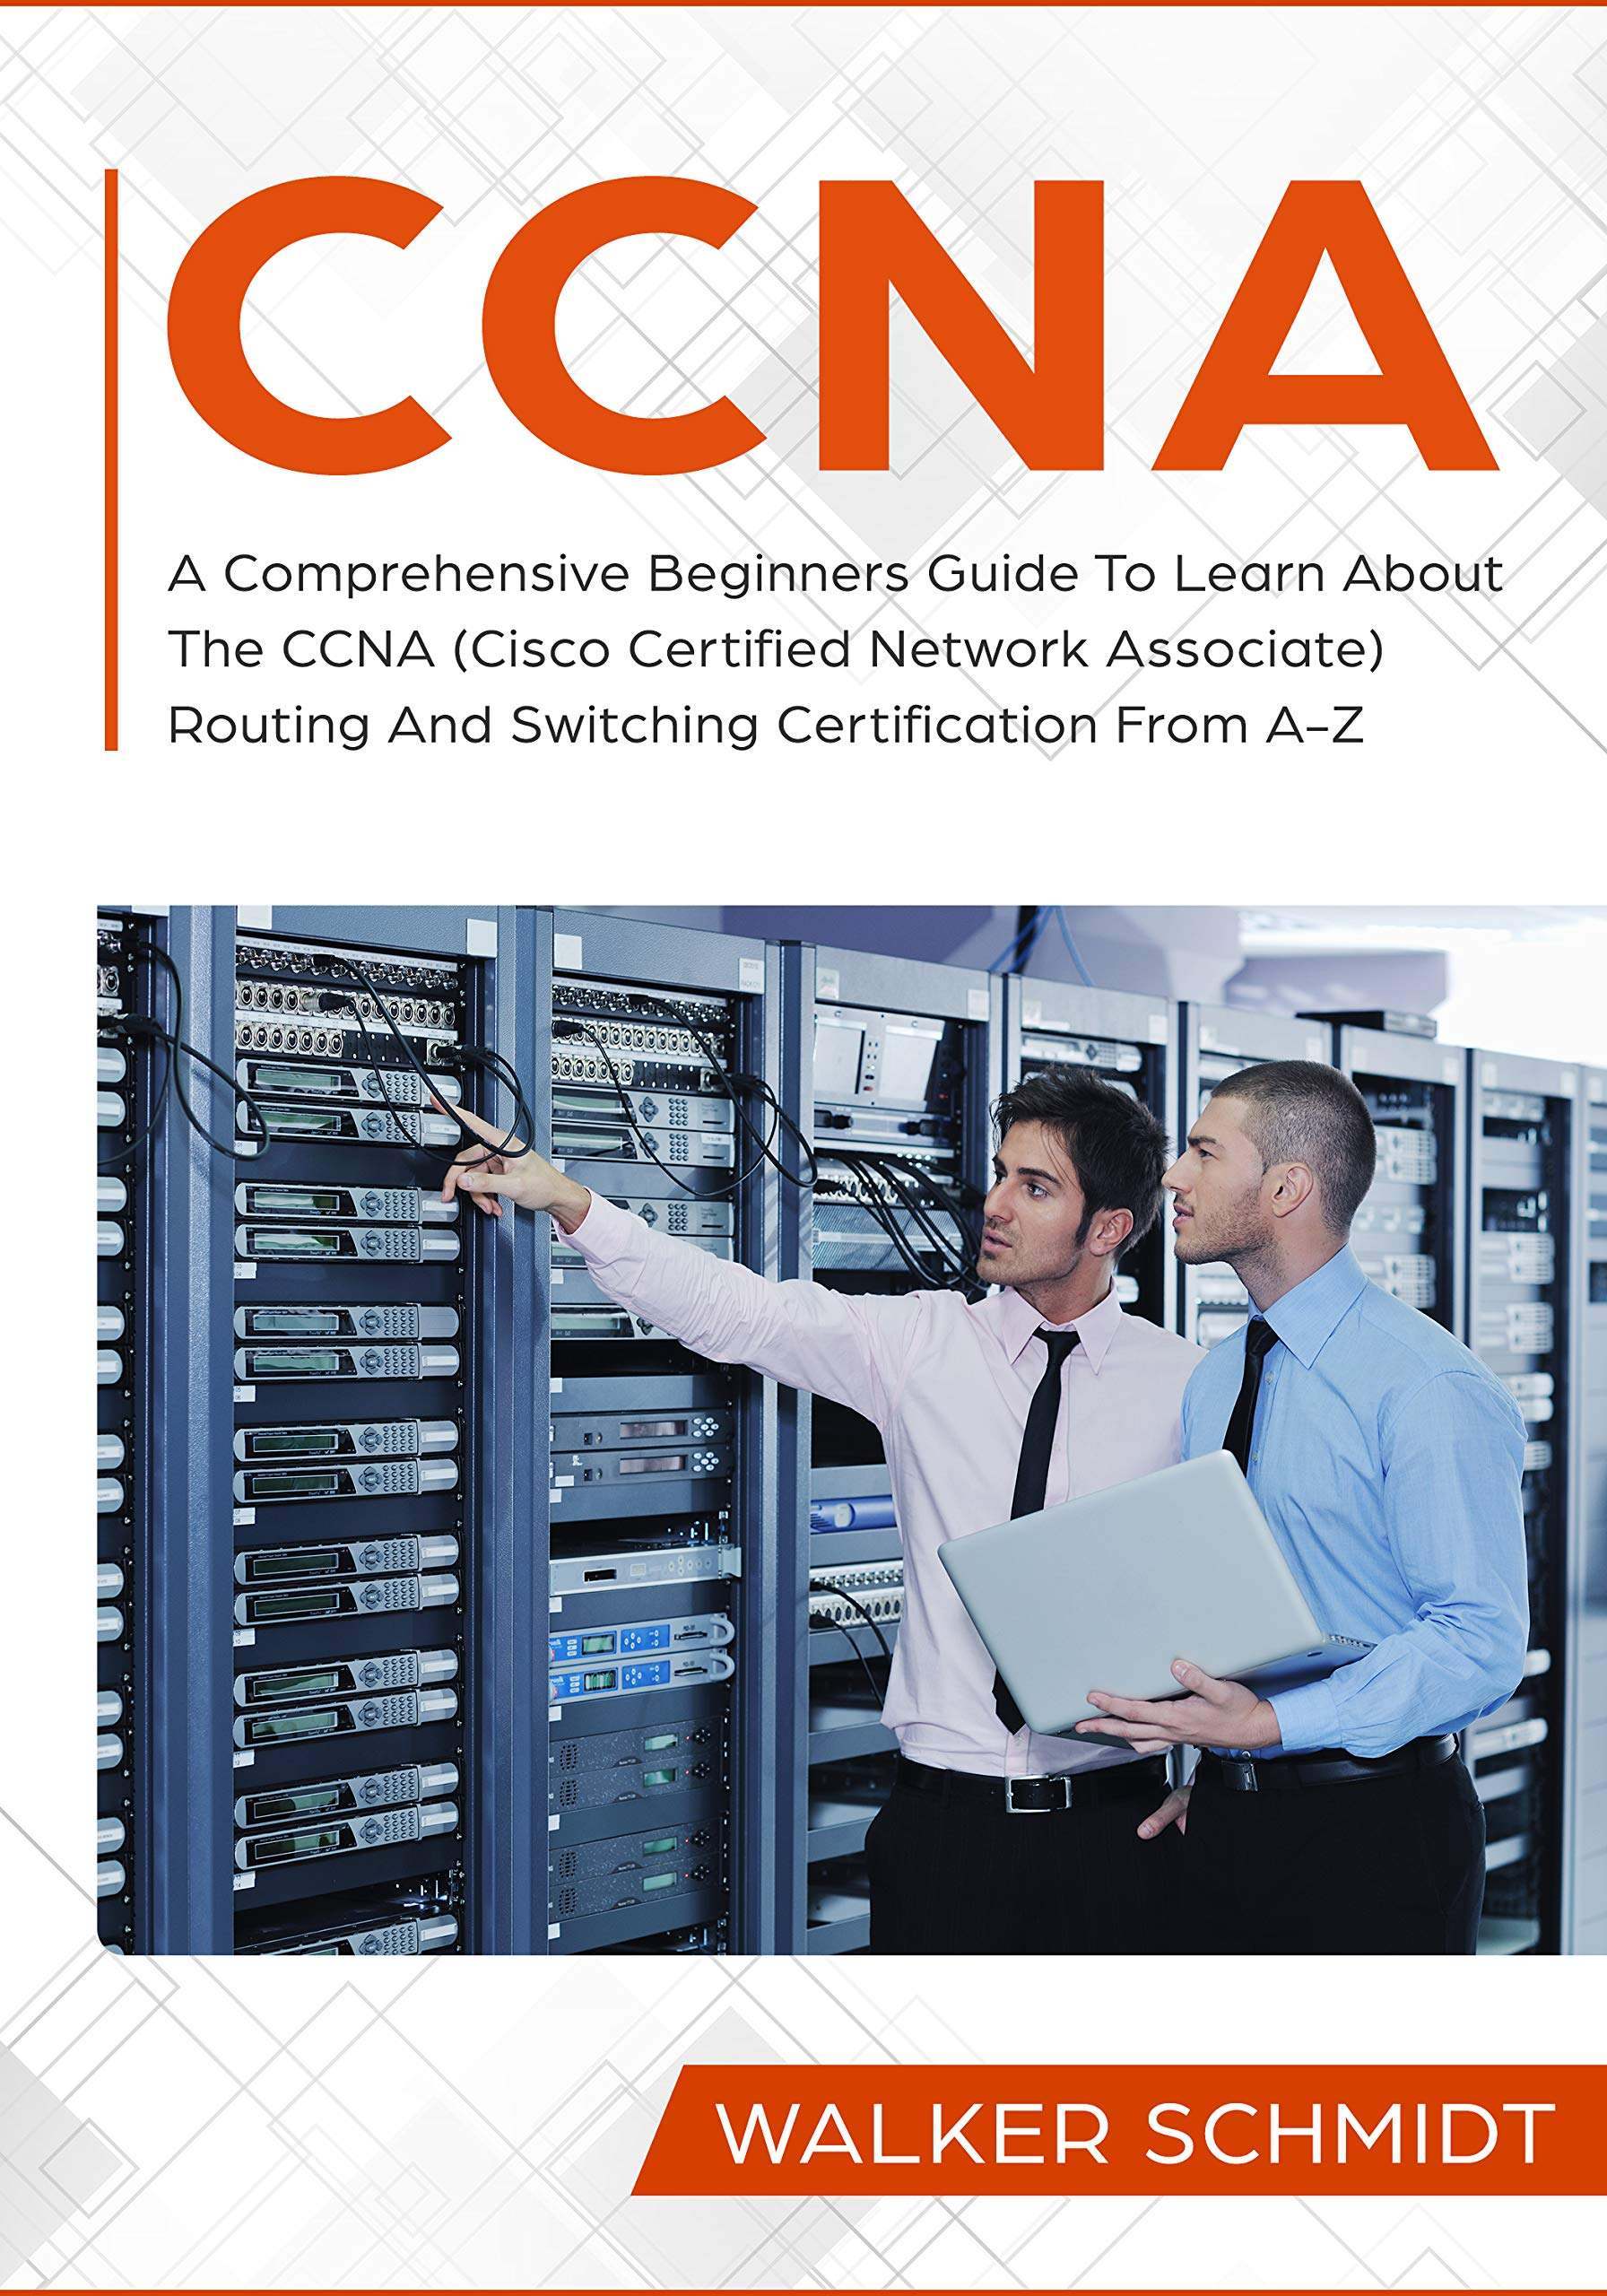 CCNA: A Comprehensive Beginners Guide To Learn About The CCNA (Cisco Certified Network Associate) Routing And Switching Certification From A-Z por Walker Schmidt